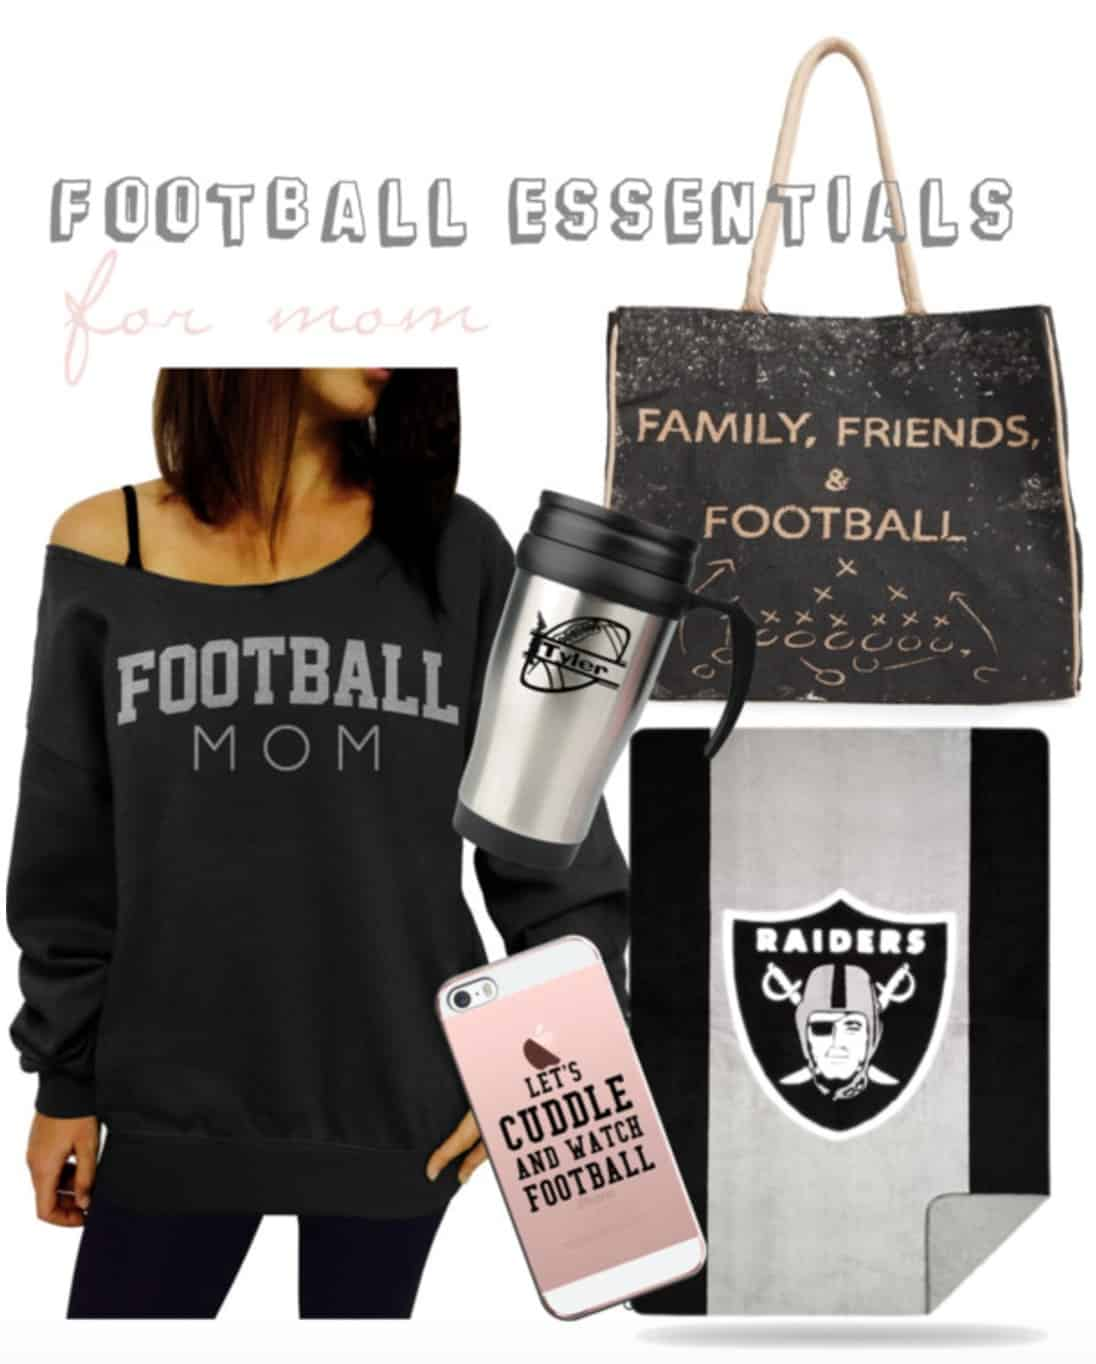 Football mom gift guide